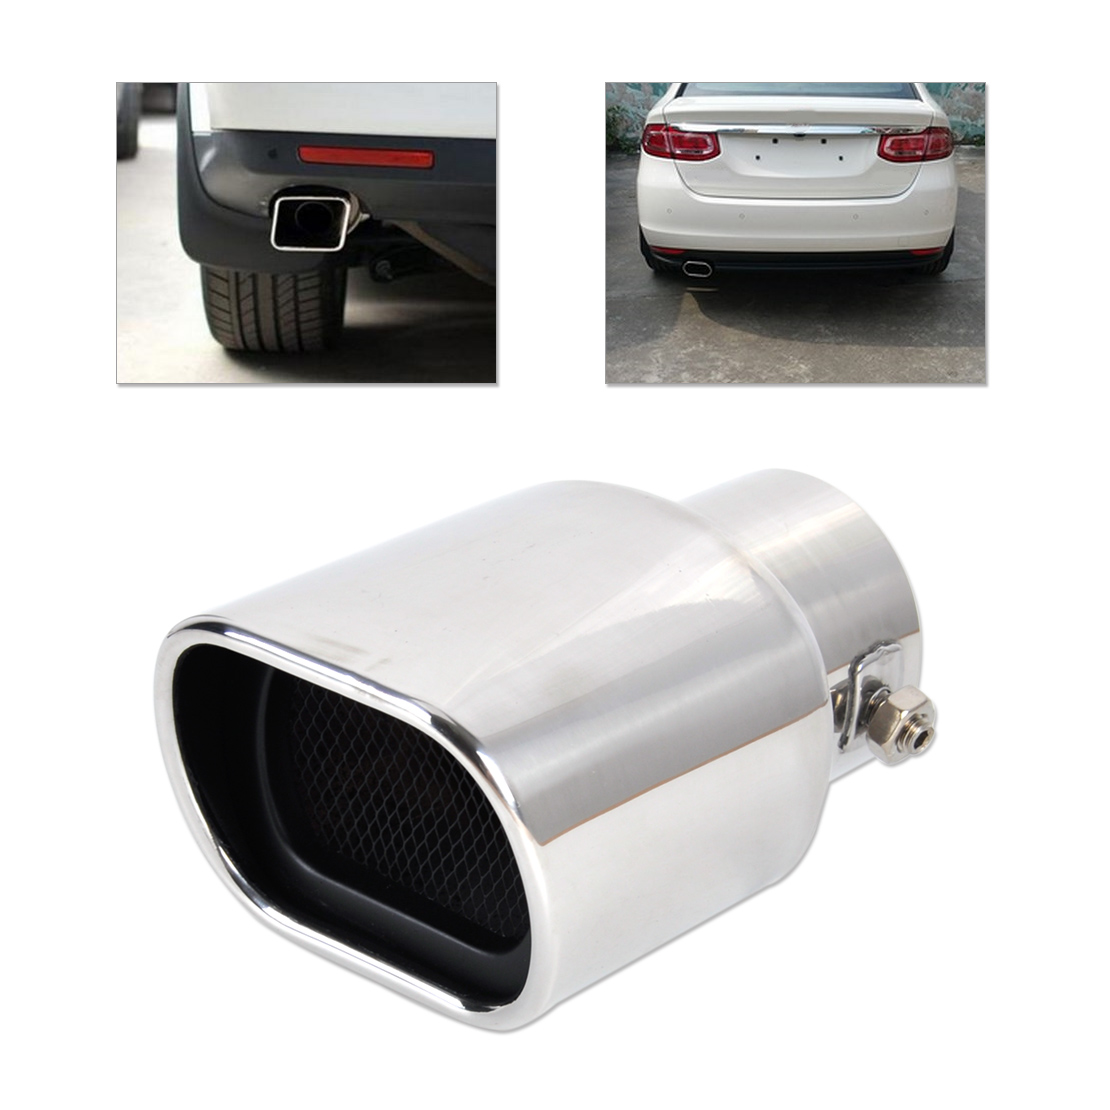 DWCX Car Universal Straight Stainless Steel Exhaust Tail Rear Muffler Tip Pipe End 32mm - 56mm for VW Nissan Peugeot Toyota Mini